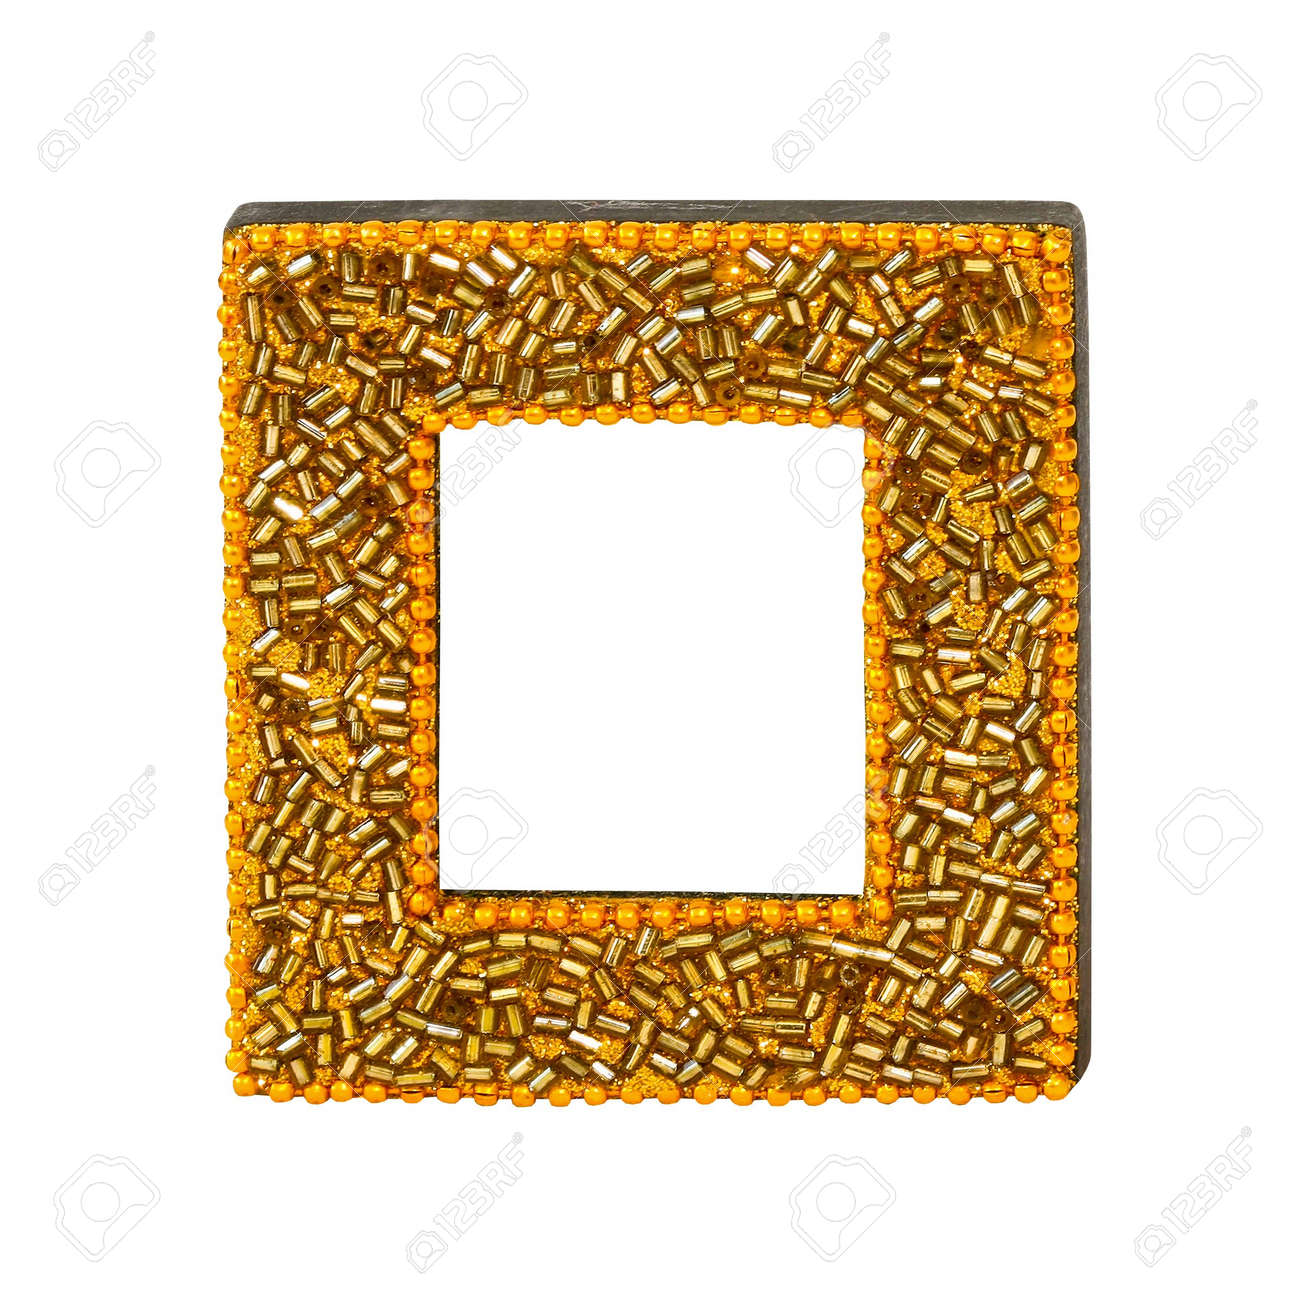 gold pearls square frame isolated stock photo 7630535